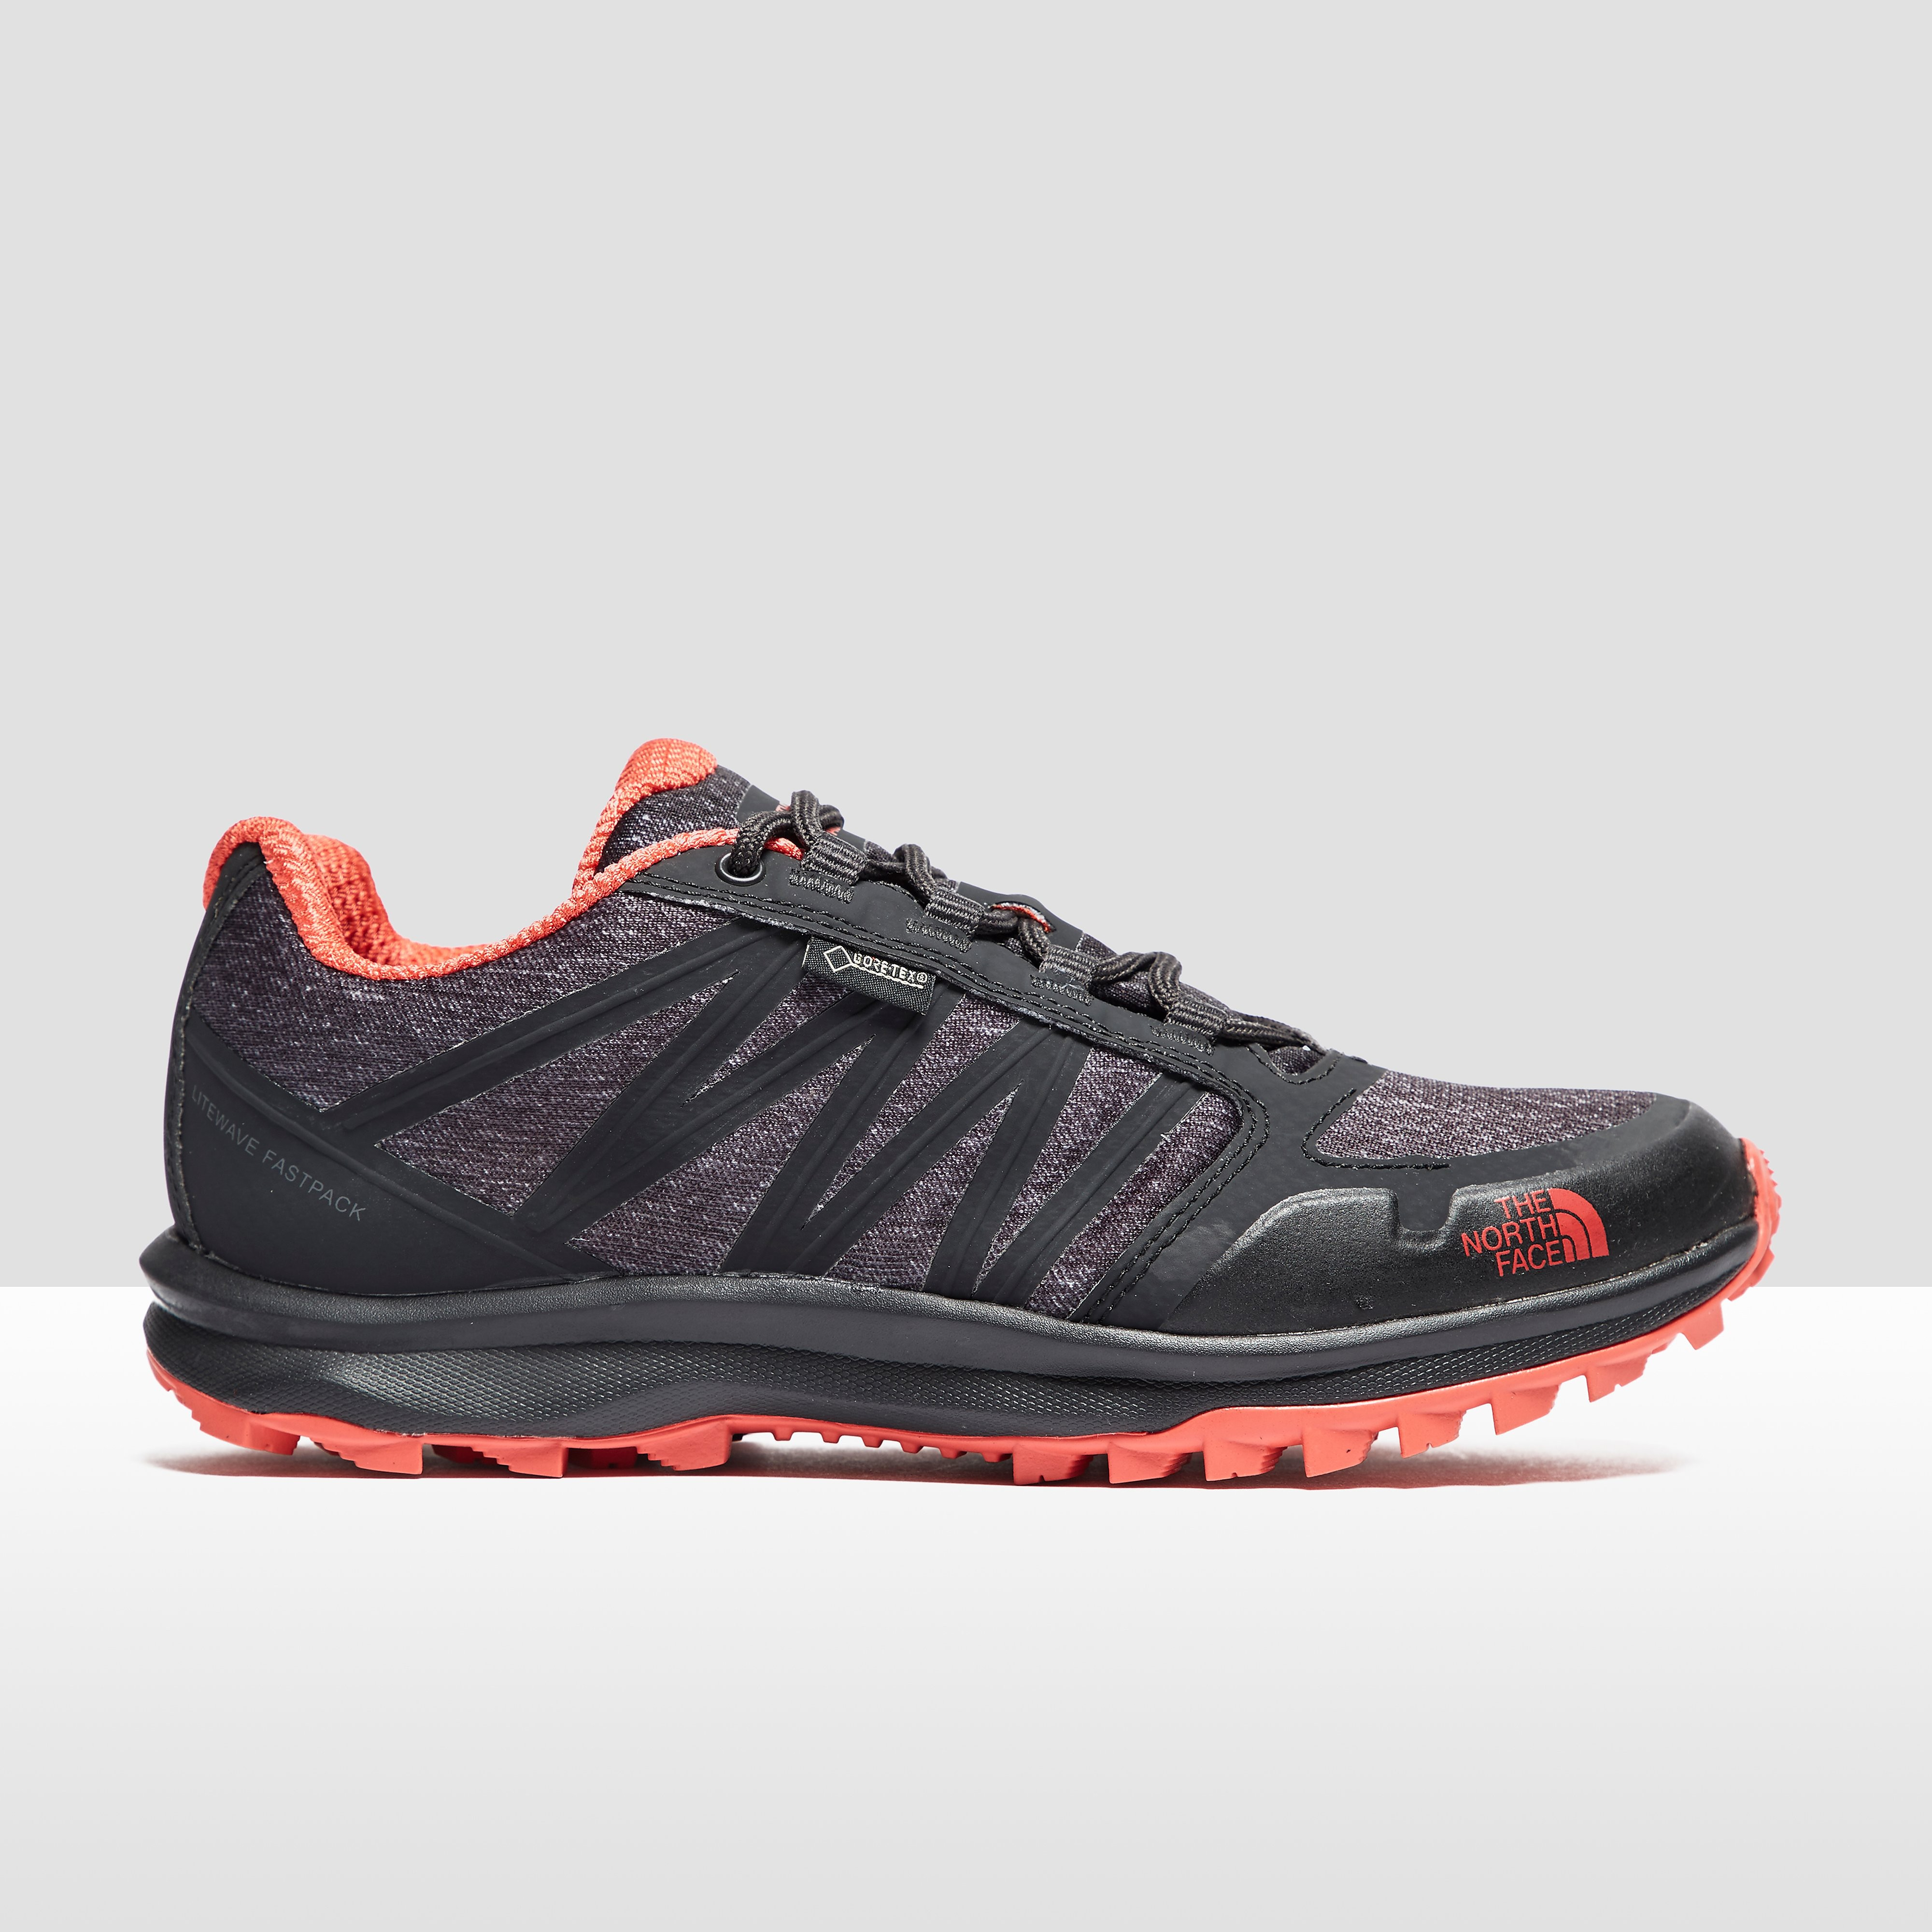 The North Face Litewave Gore-Tex Women's Walking Shoes